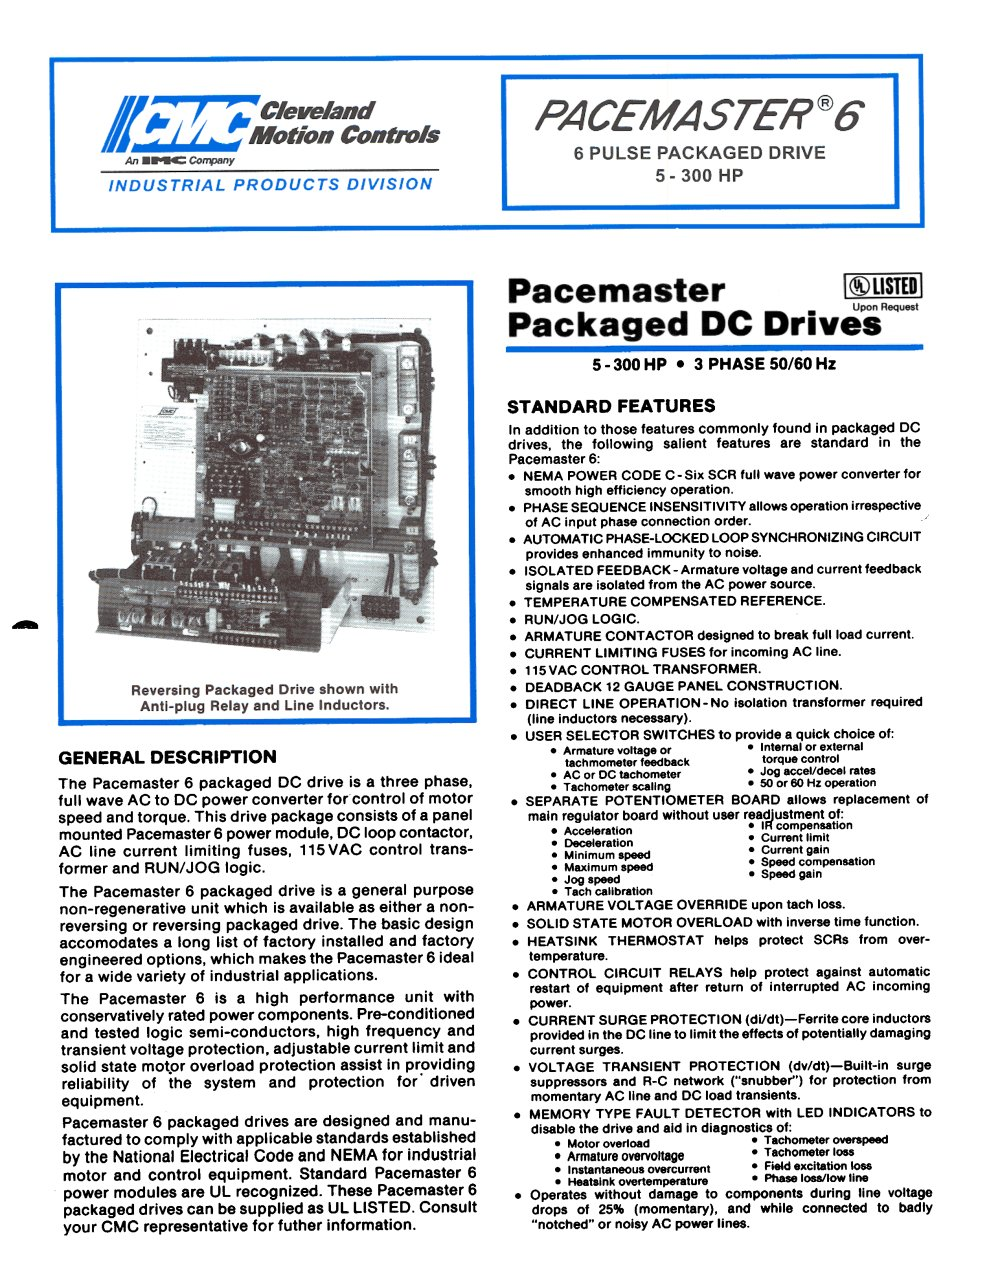 DC Drives PACEMASTER 6 Datasheet - Cleveland Motion Controls - PDF